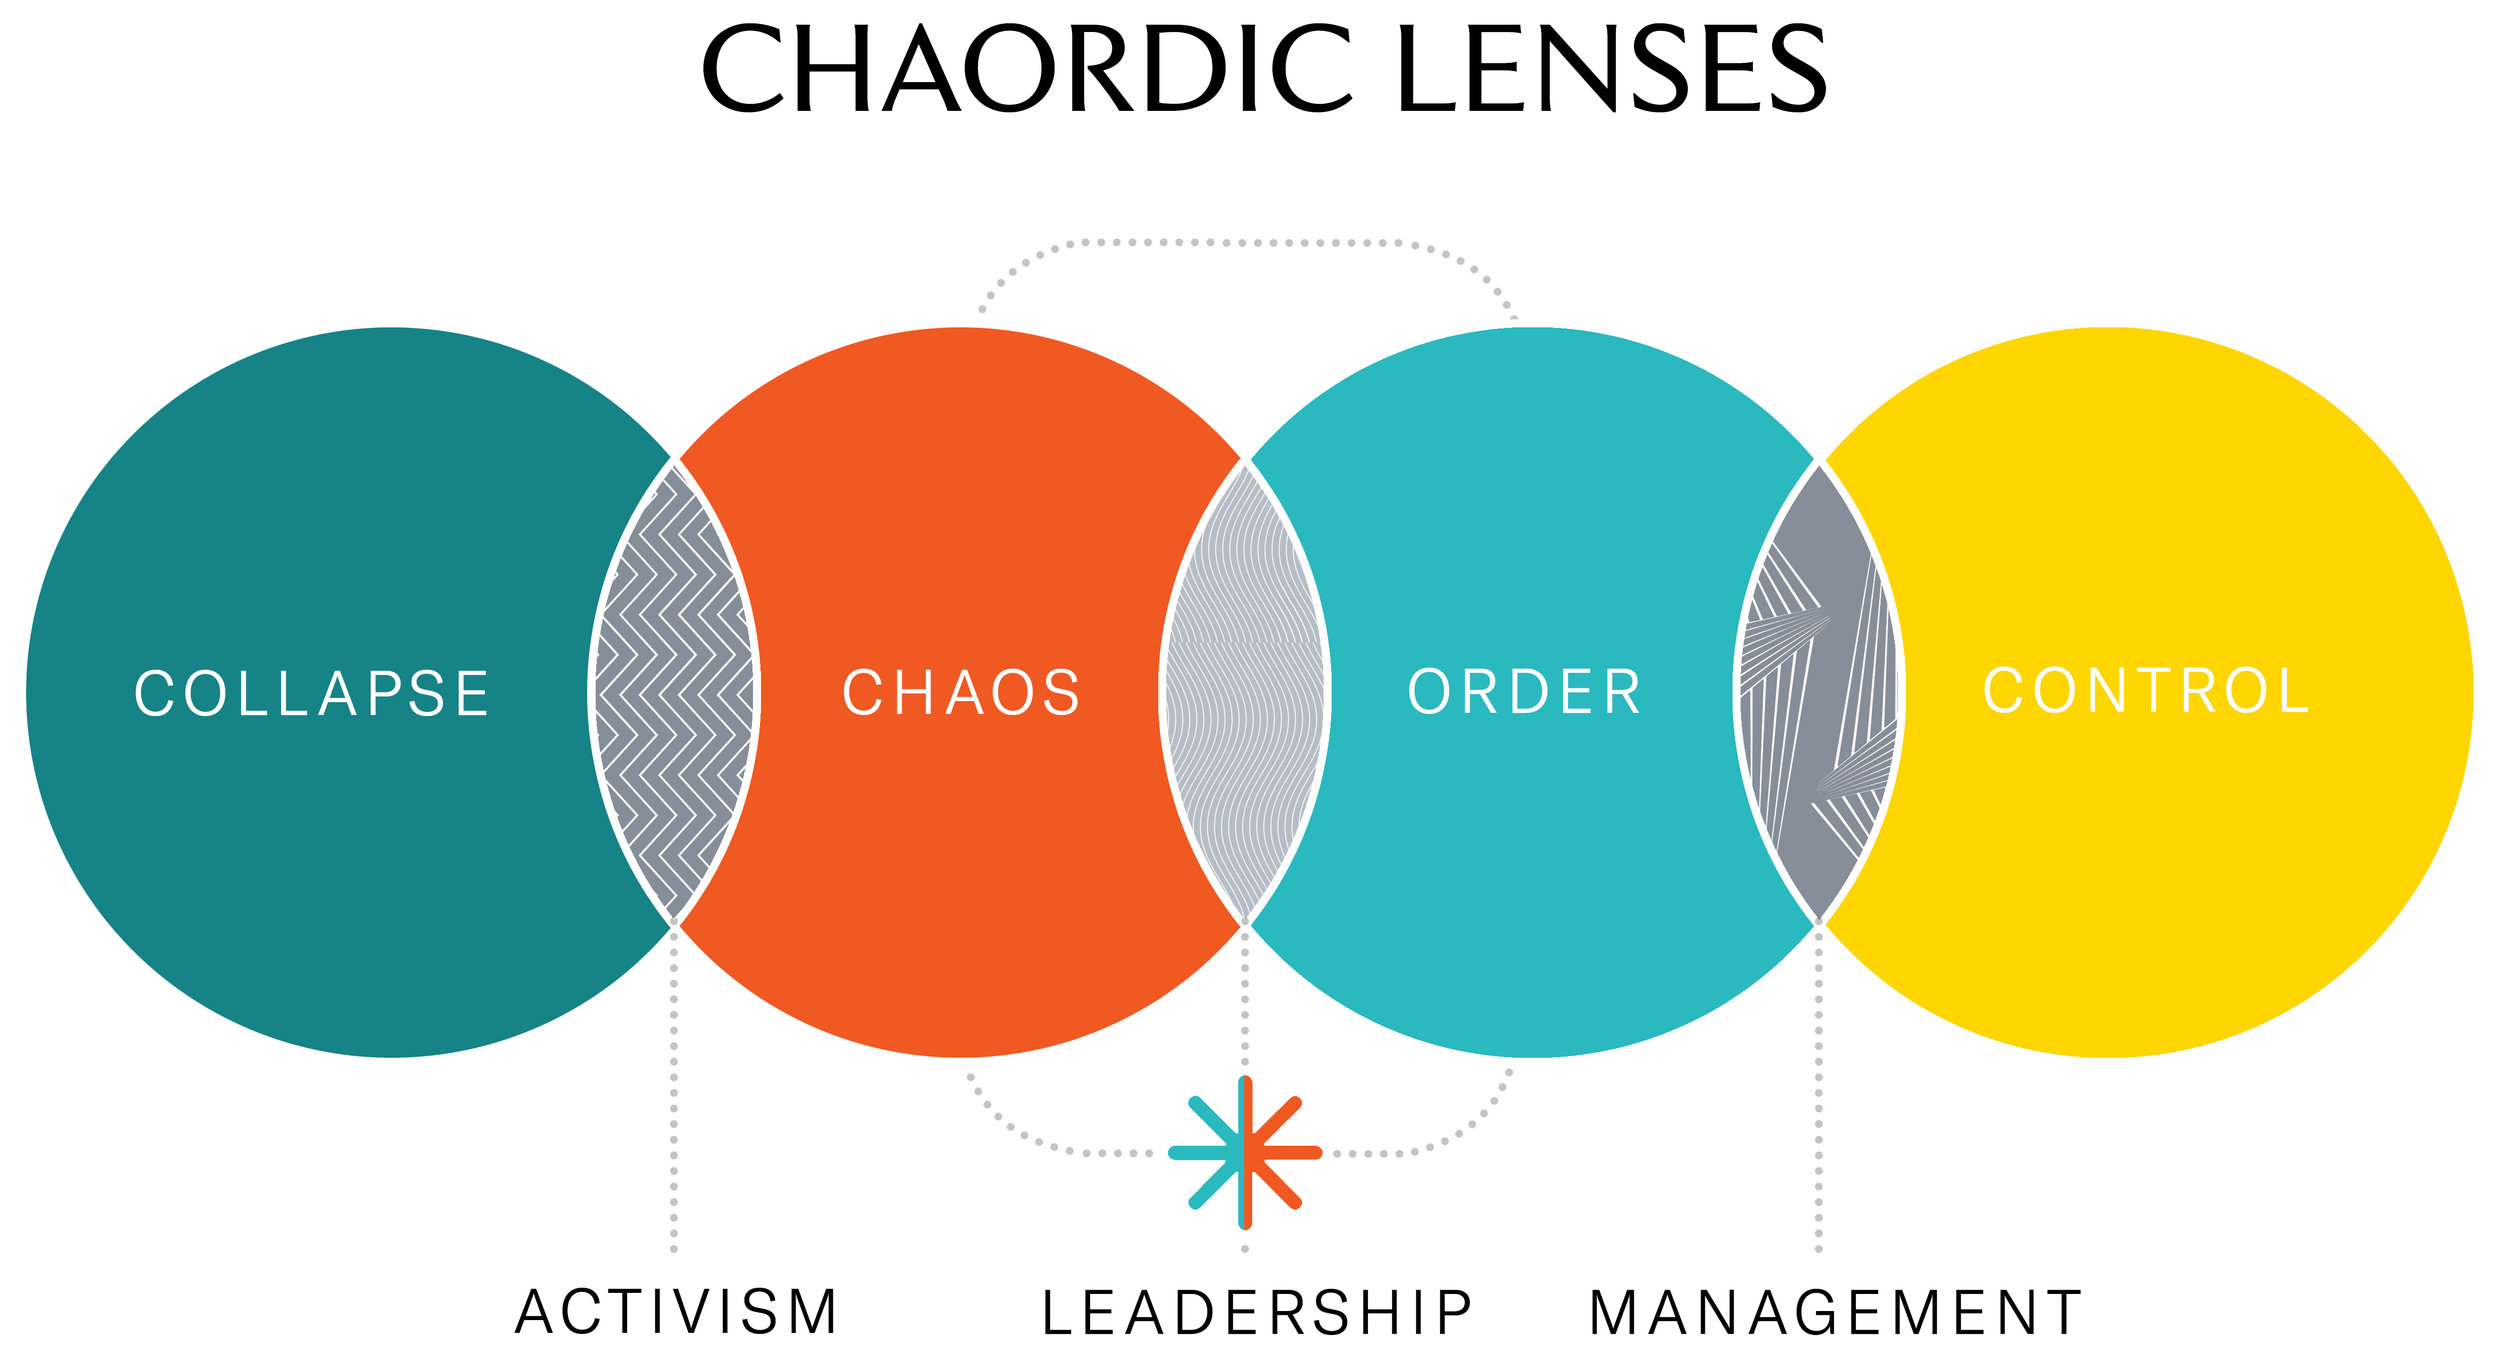 TO_Infographic_Chaordic-lenses_V2.jpg